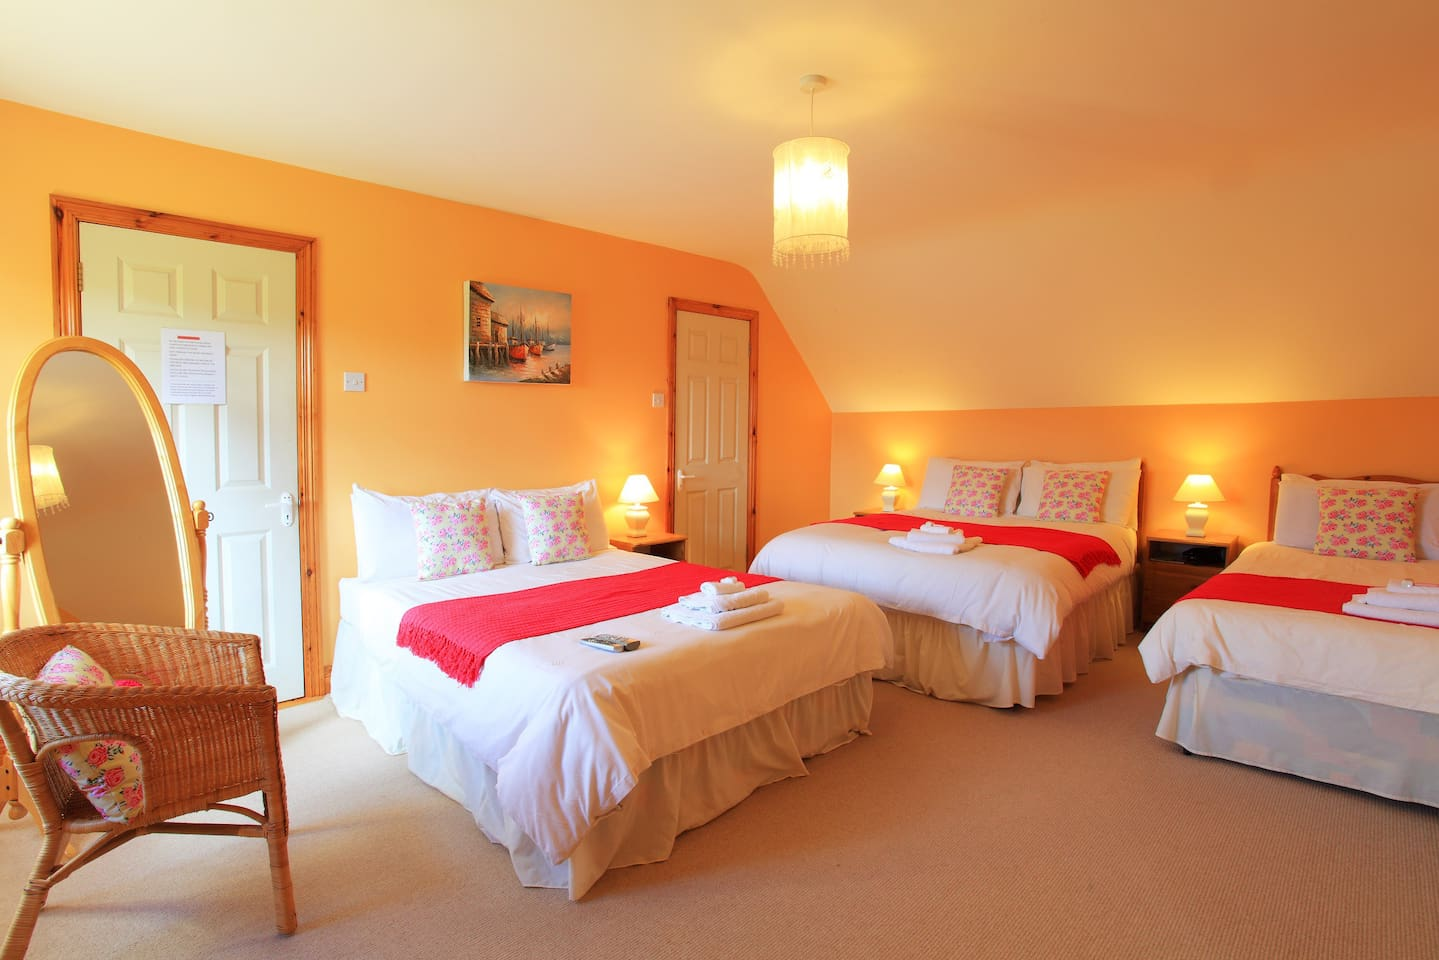 Large Room suitable for up to 5 persons